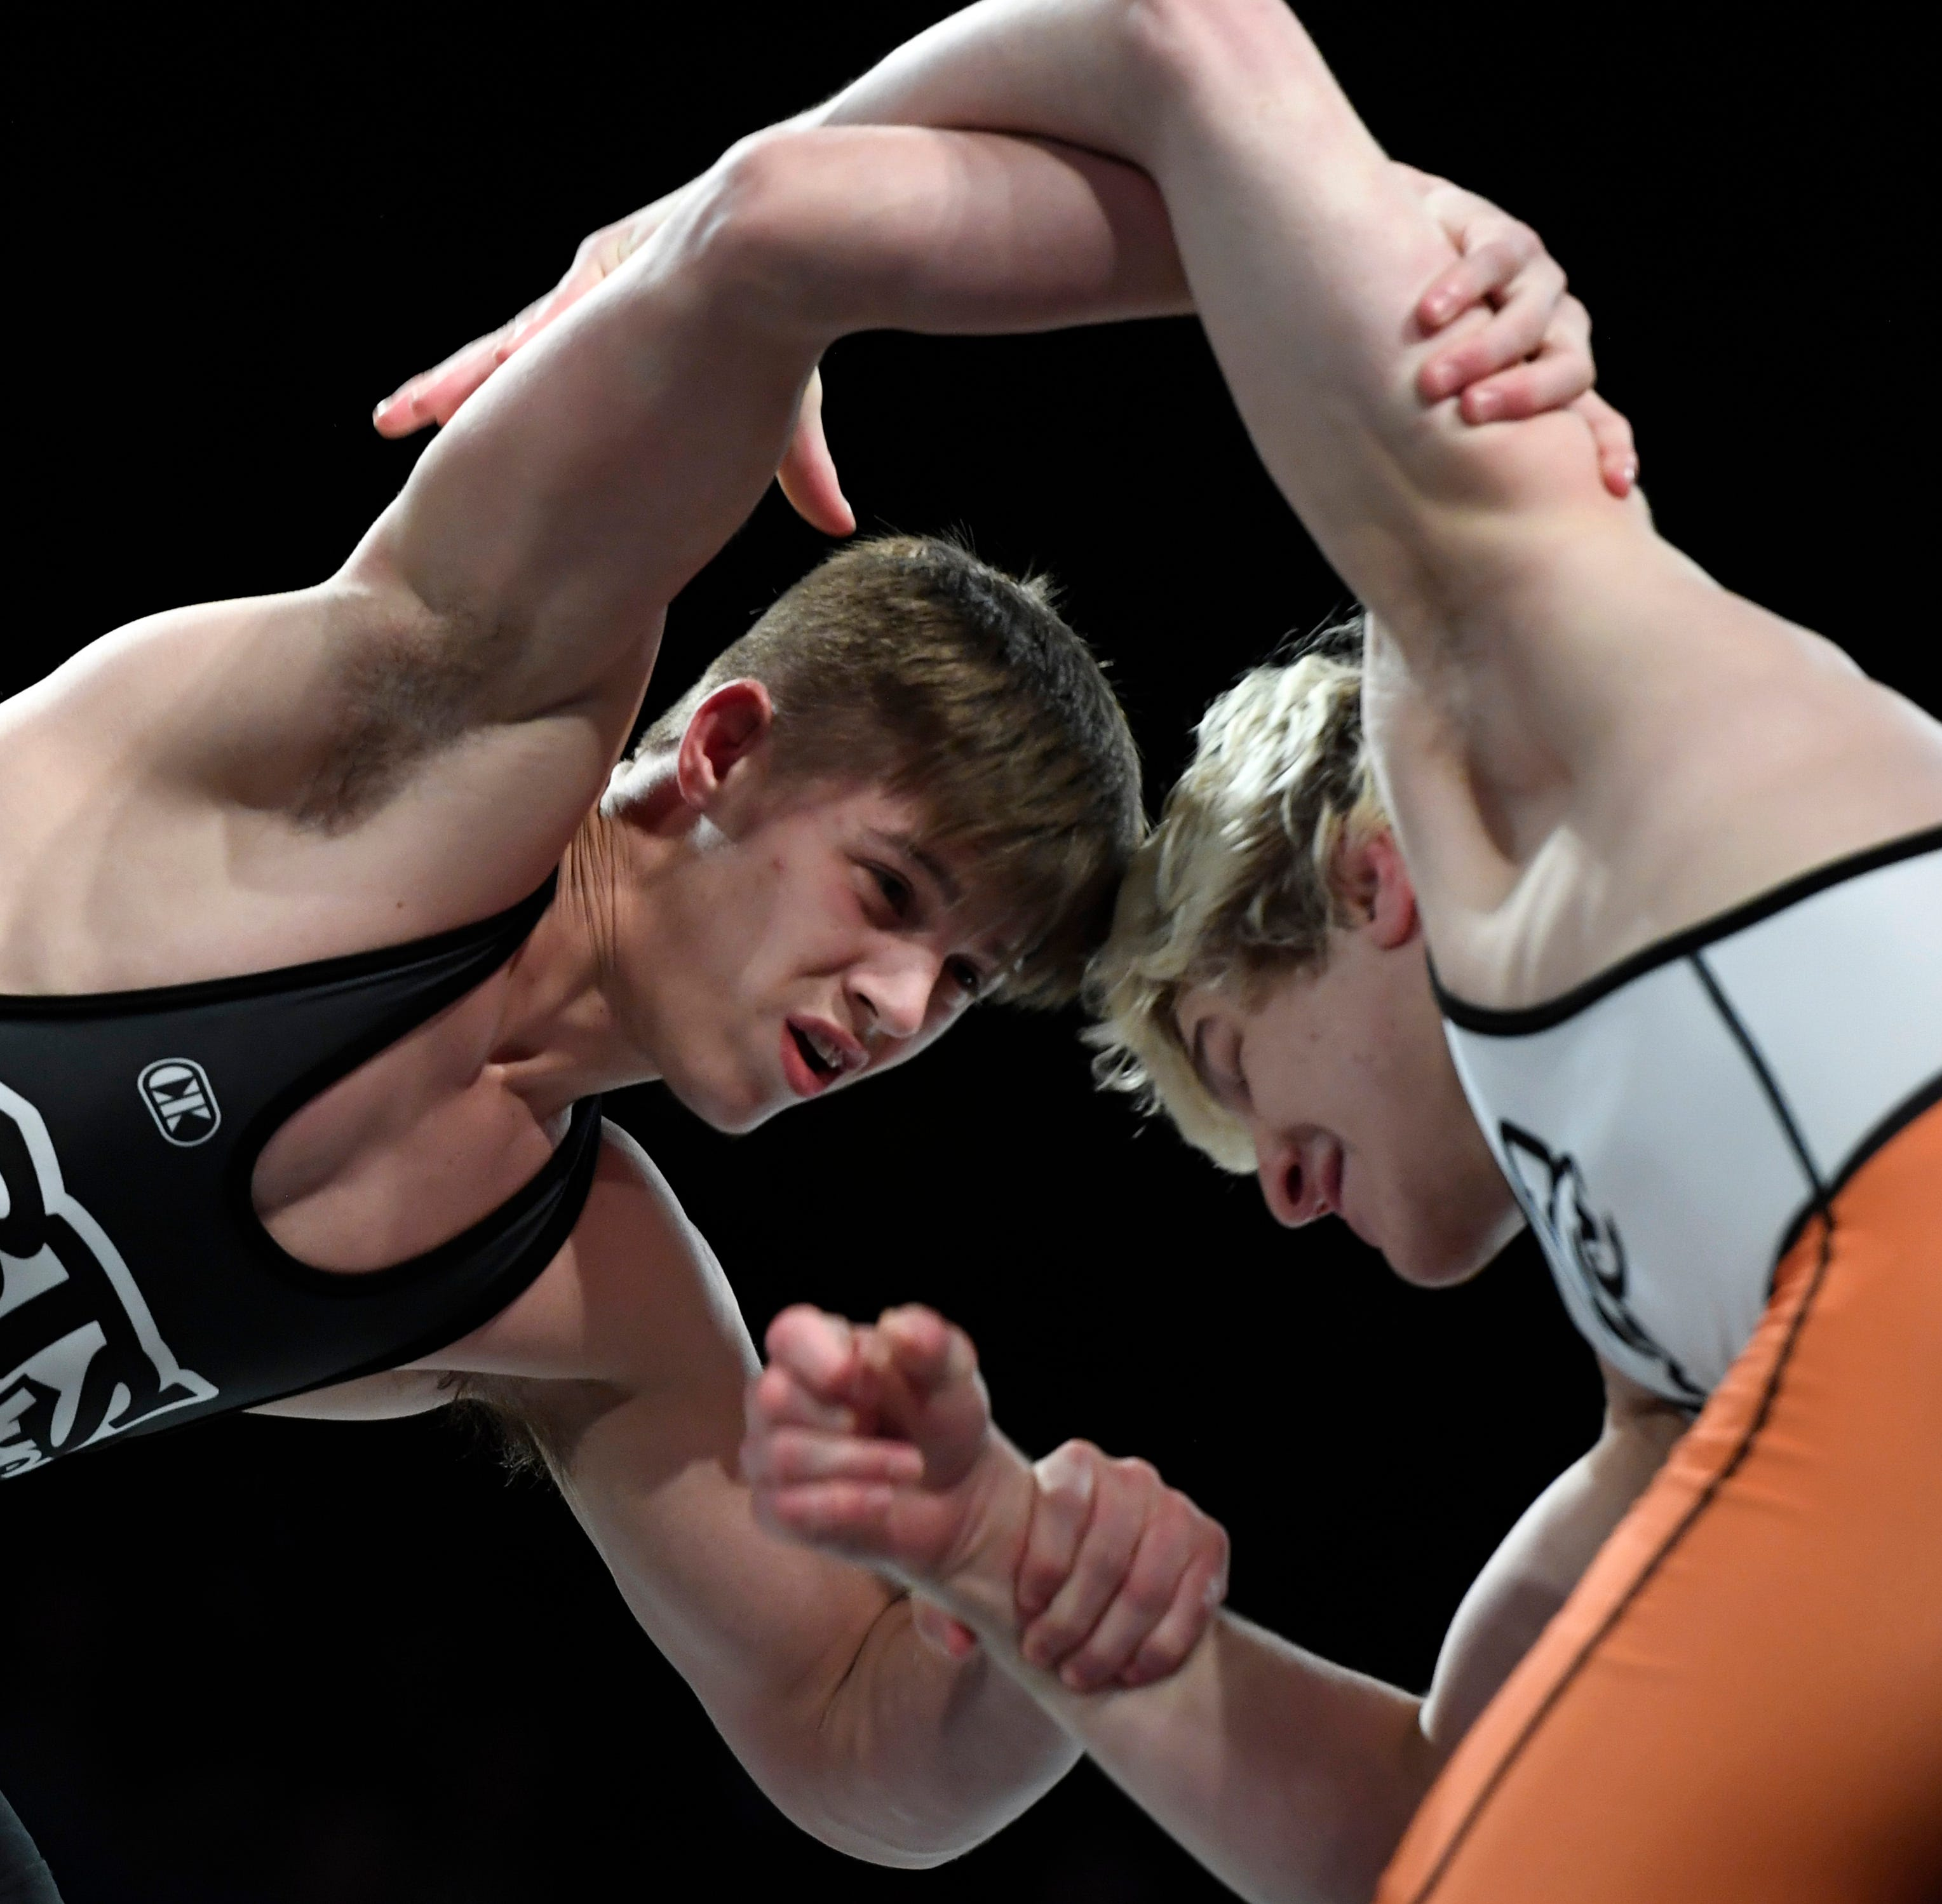 Grapple at the Garden 2019: Complete results from the Beat the Streets matchups